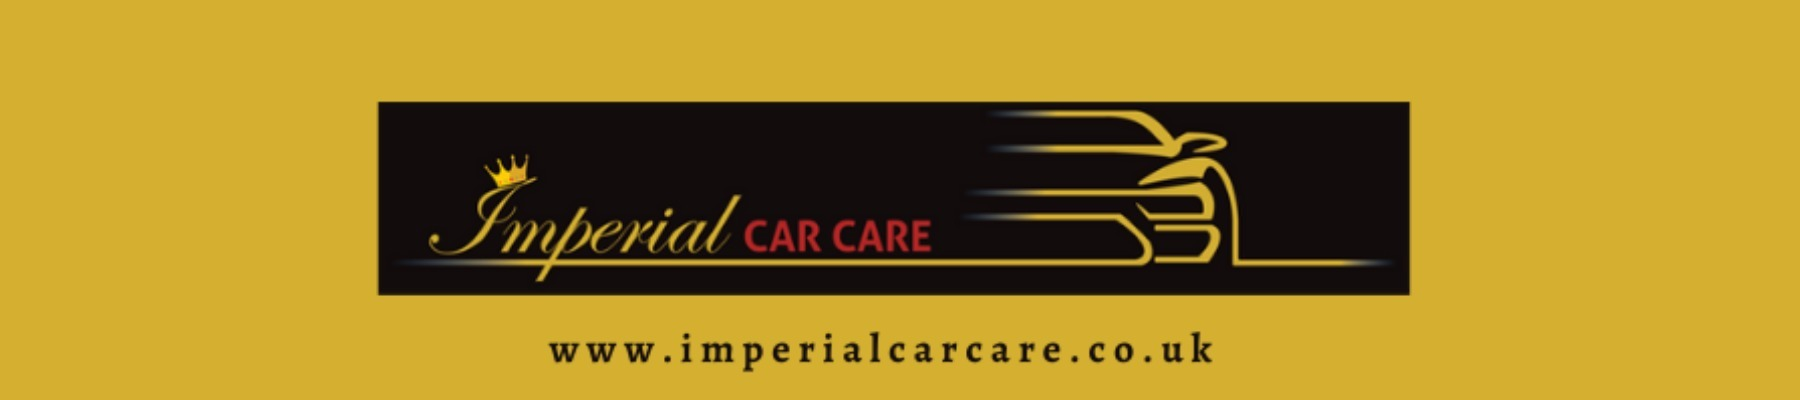 Imperial Car Care (@imperialcarcare) Cover Image